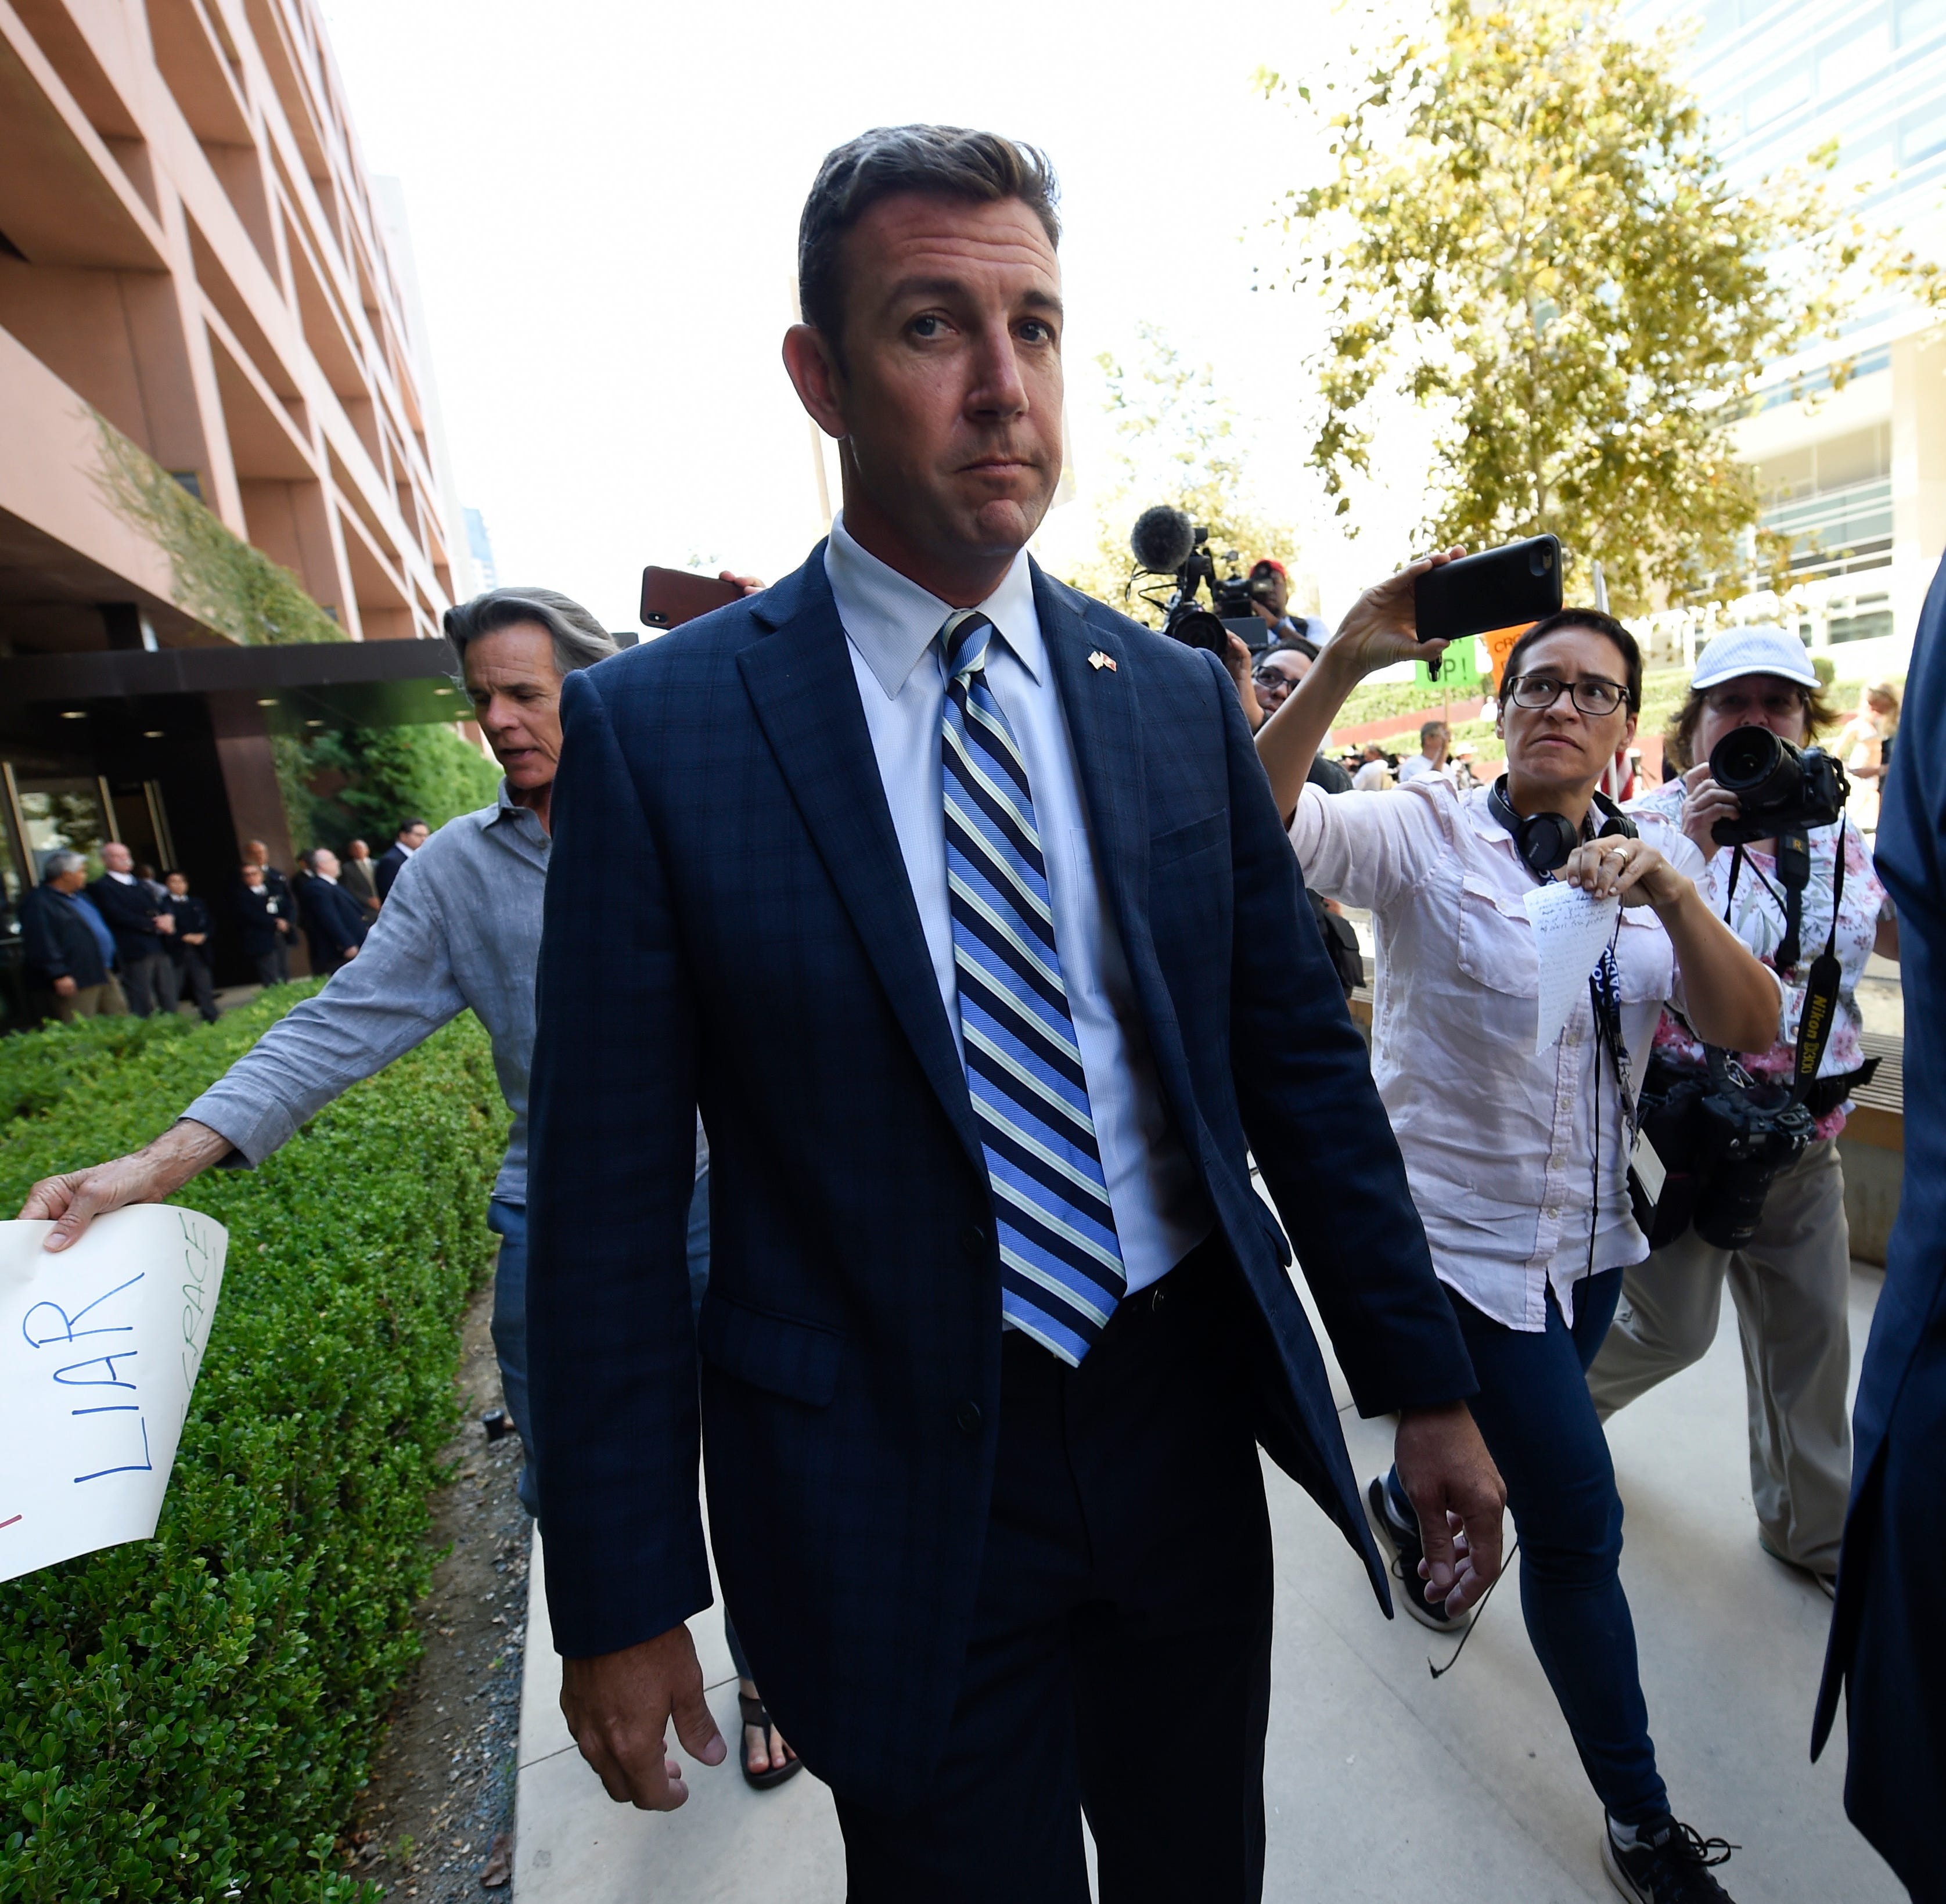 Military service doesn't give politicians like Duncan Hunter license to break the law